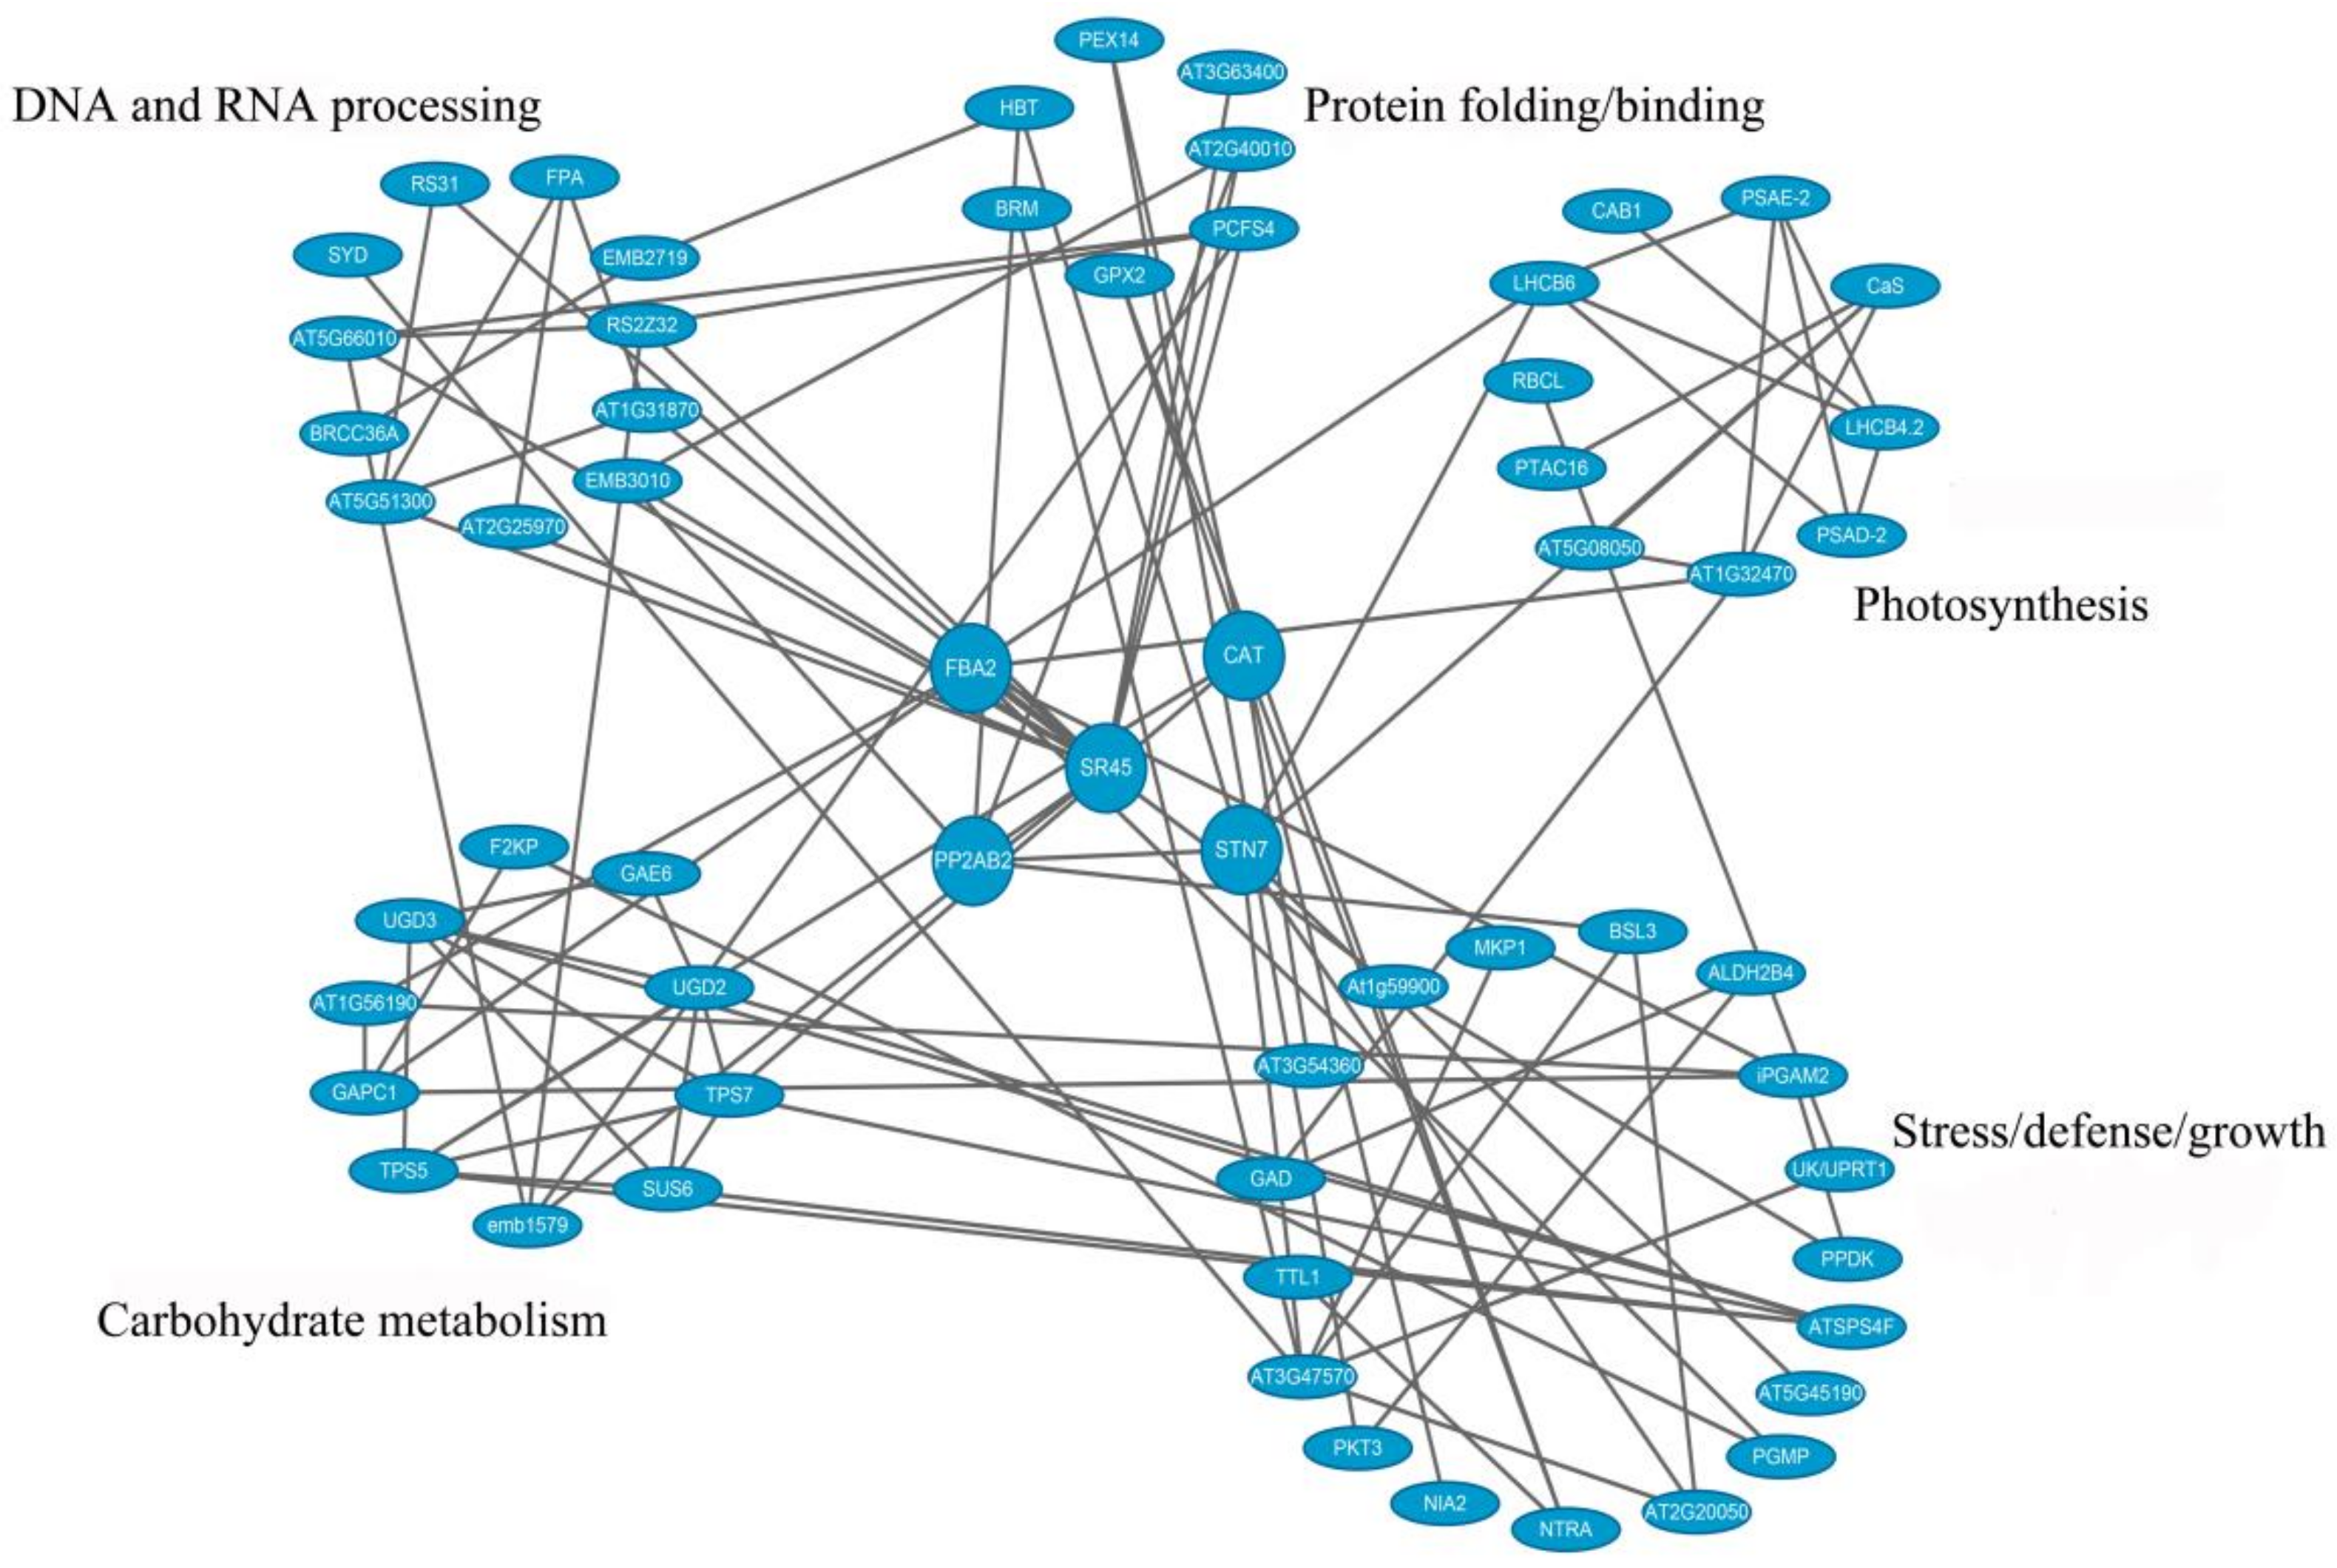 Biomolecules | Free Full-Text | Proteomic and